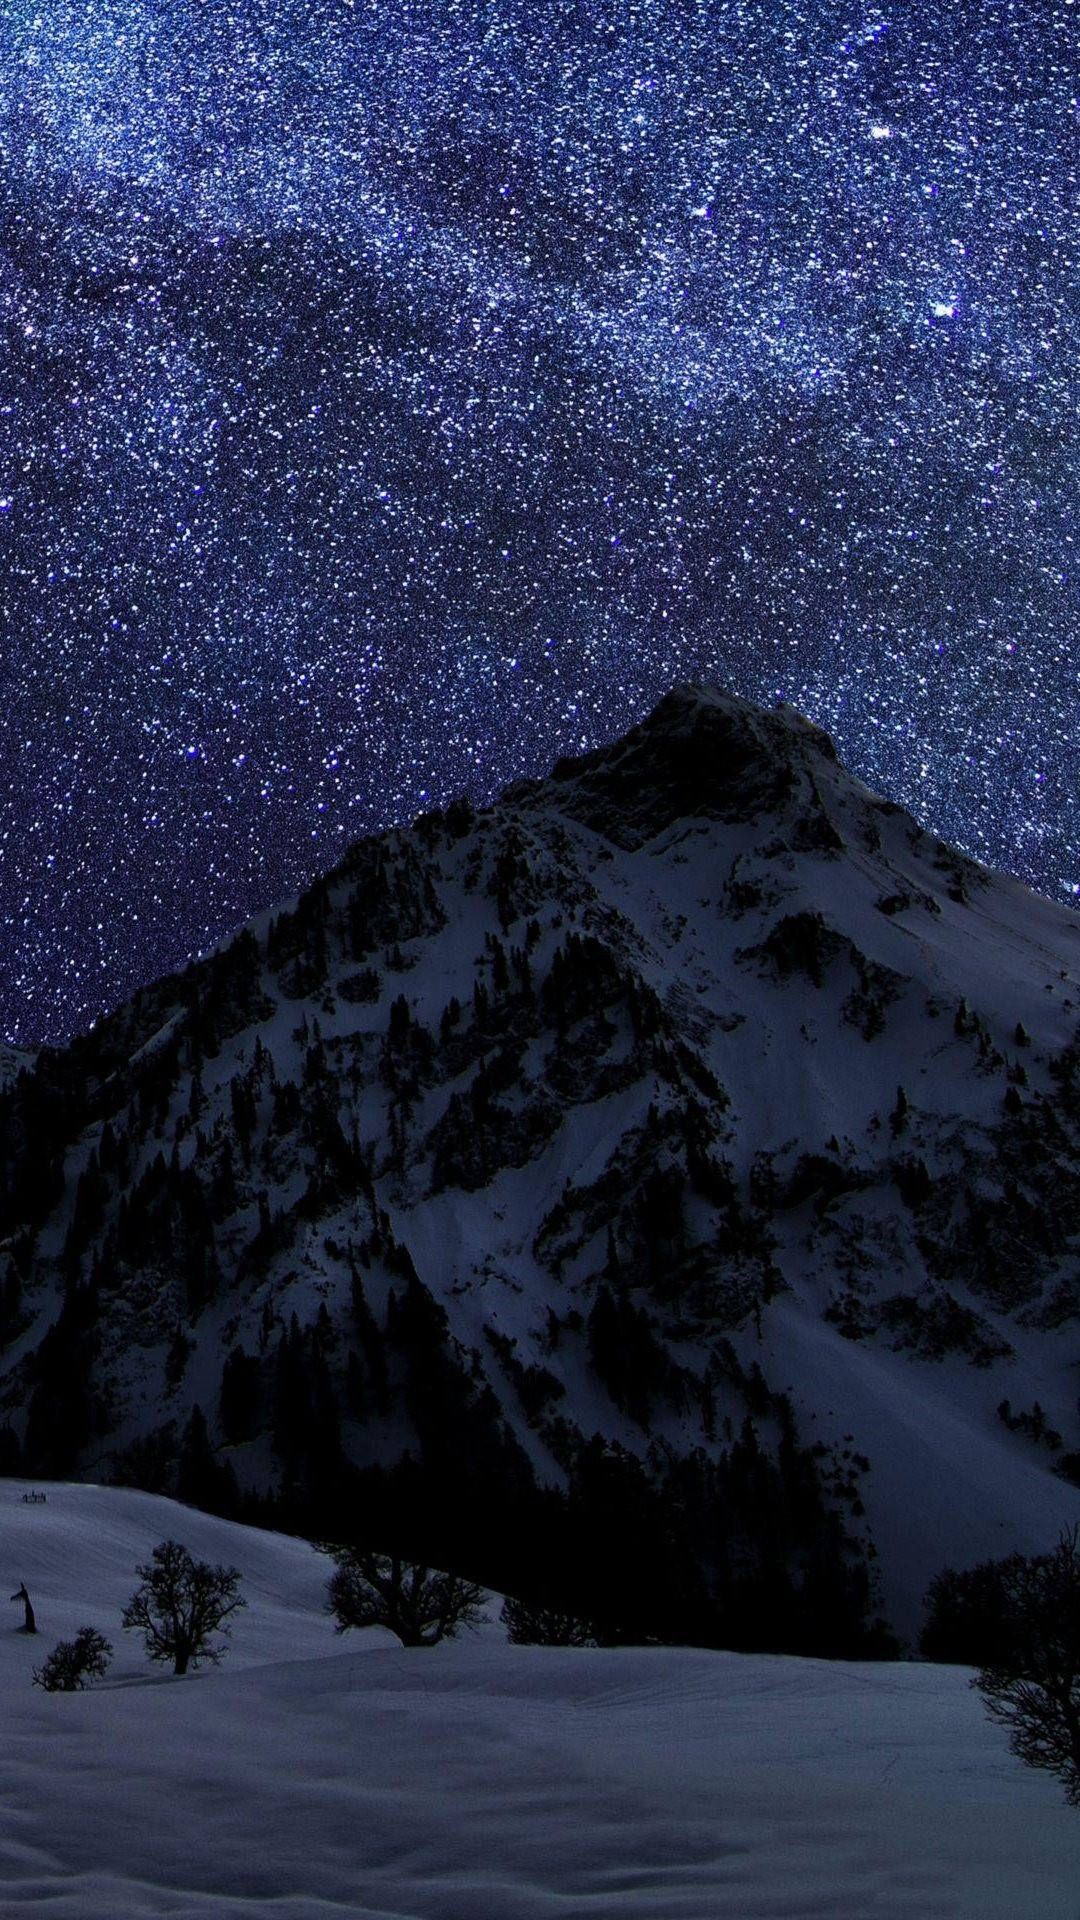 Snow Mountain Noite Sky Stars Android Wallpaper Whatsapp Android 1080x1920